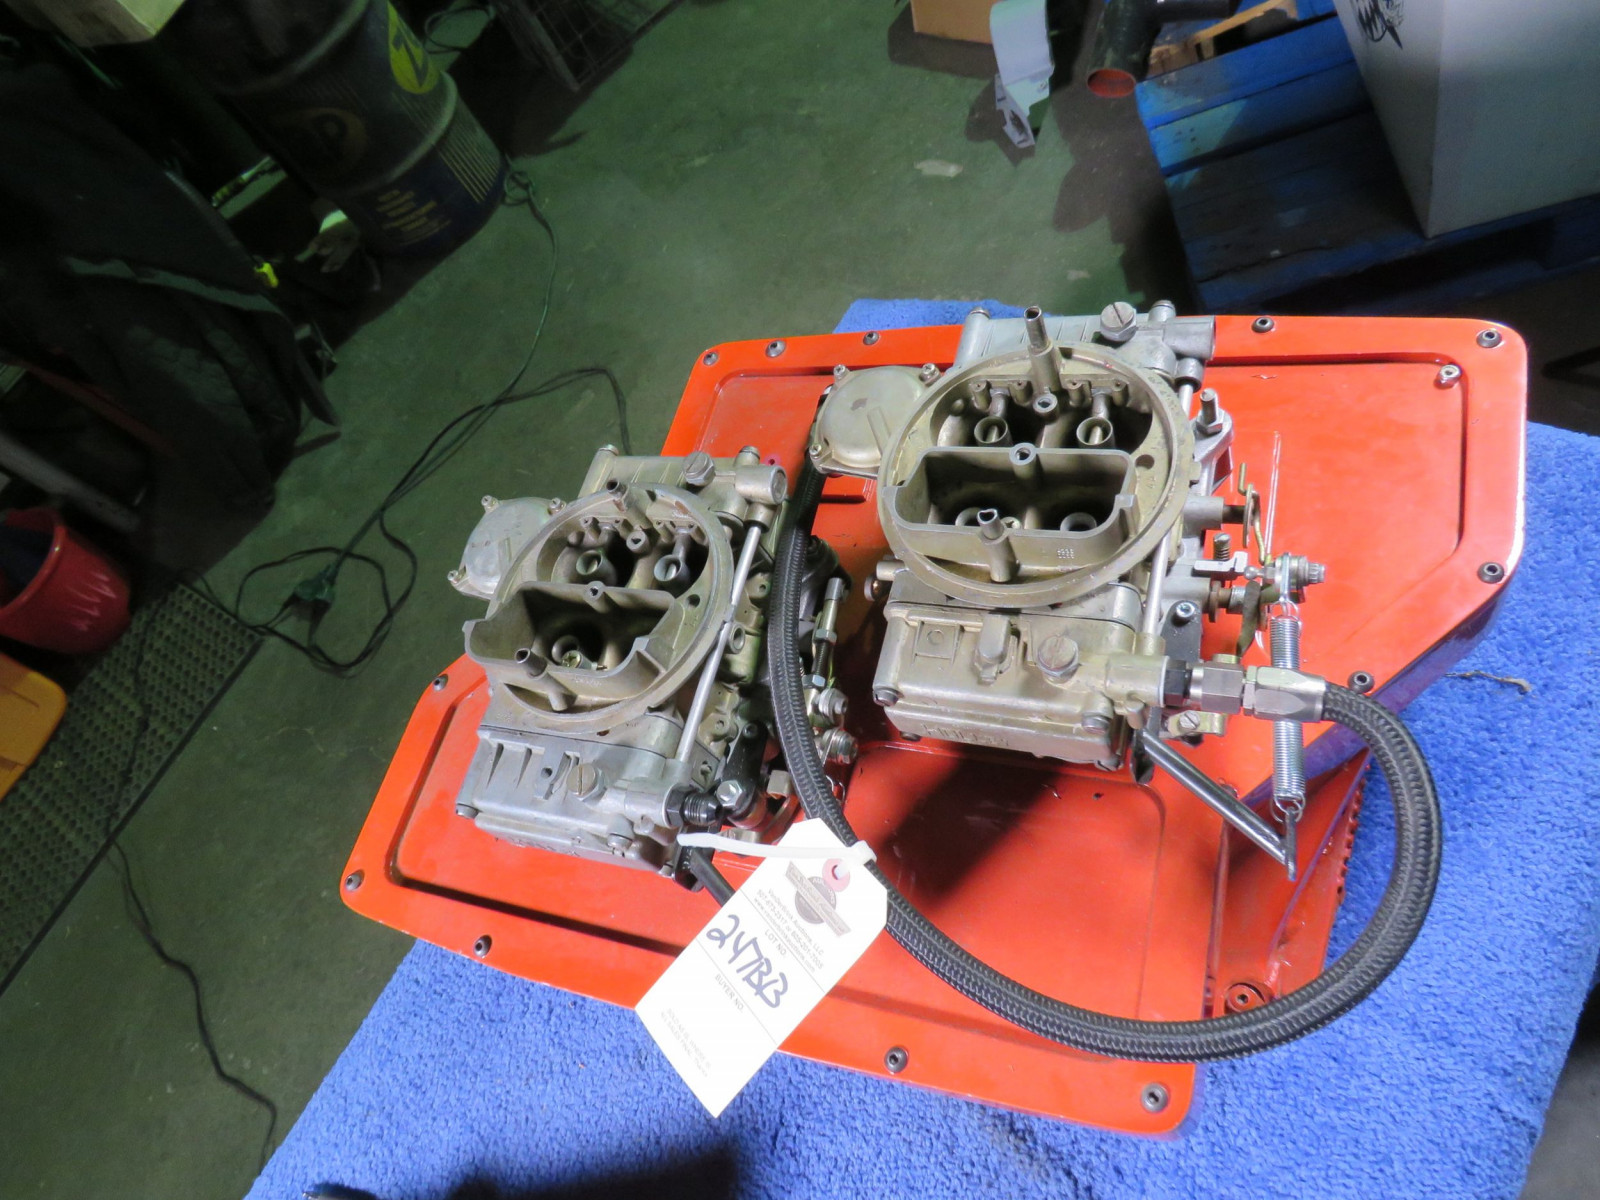 426 Hemi Cross Ram Wedge 2-4bbl Carb Set UP with Ray Barton Intake Plate - Image 9